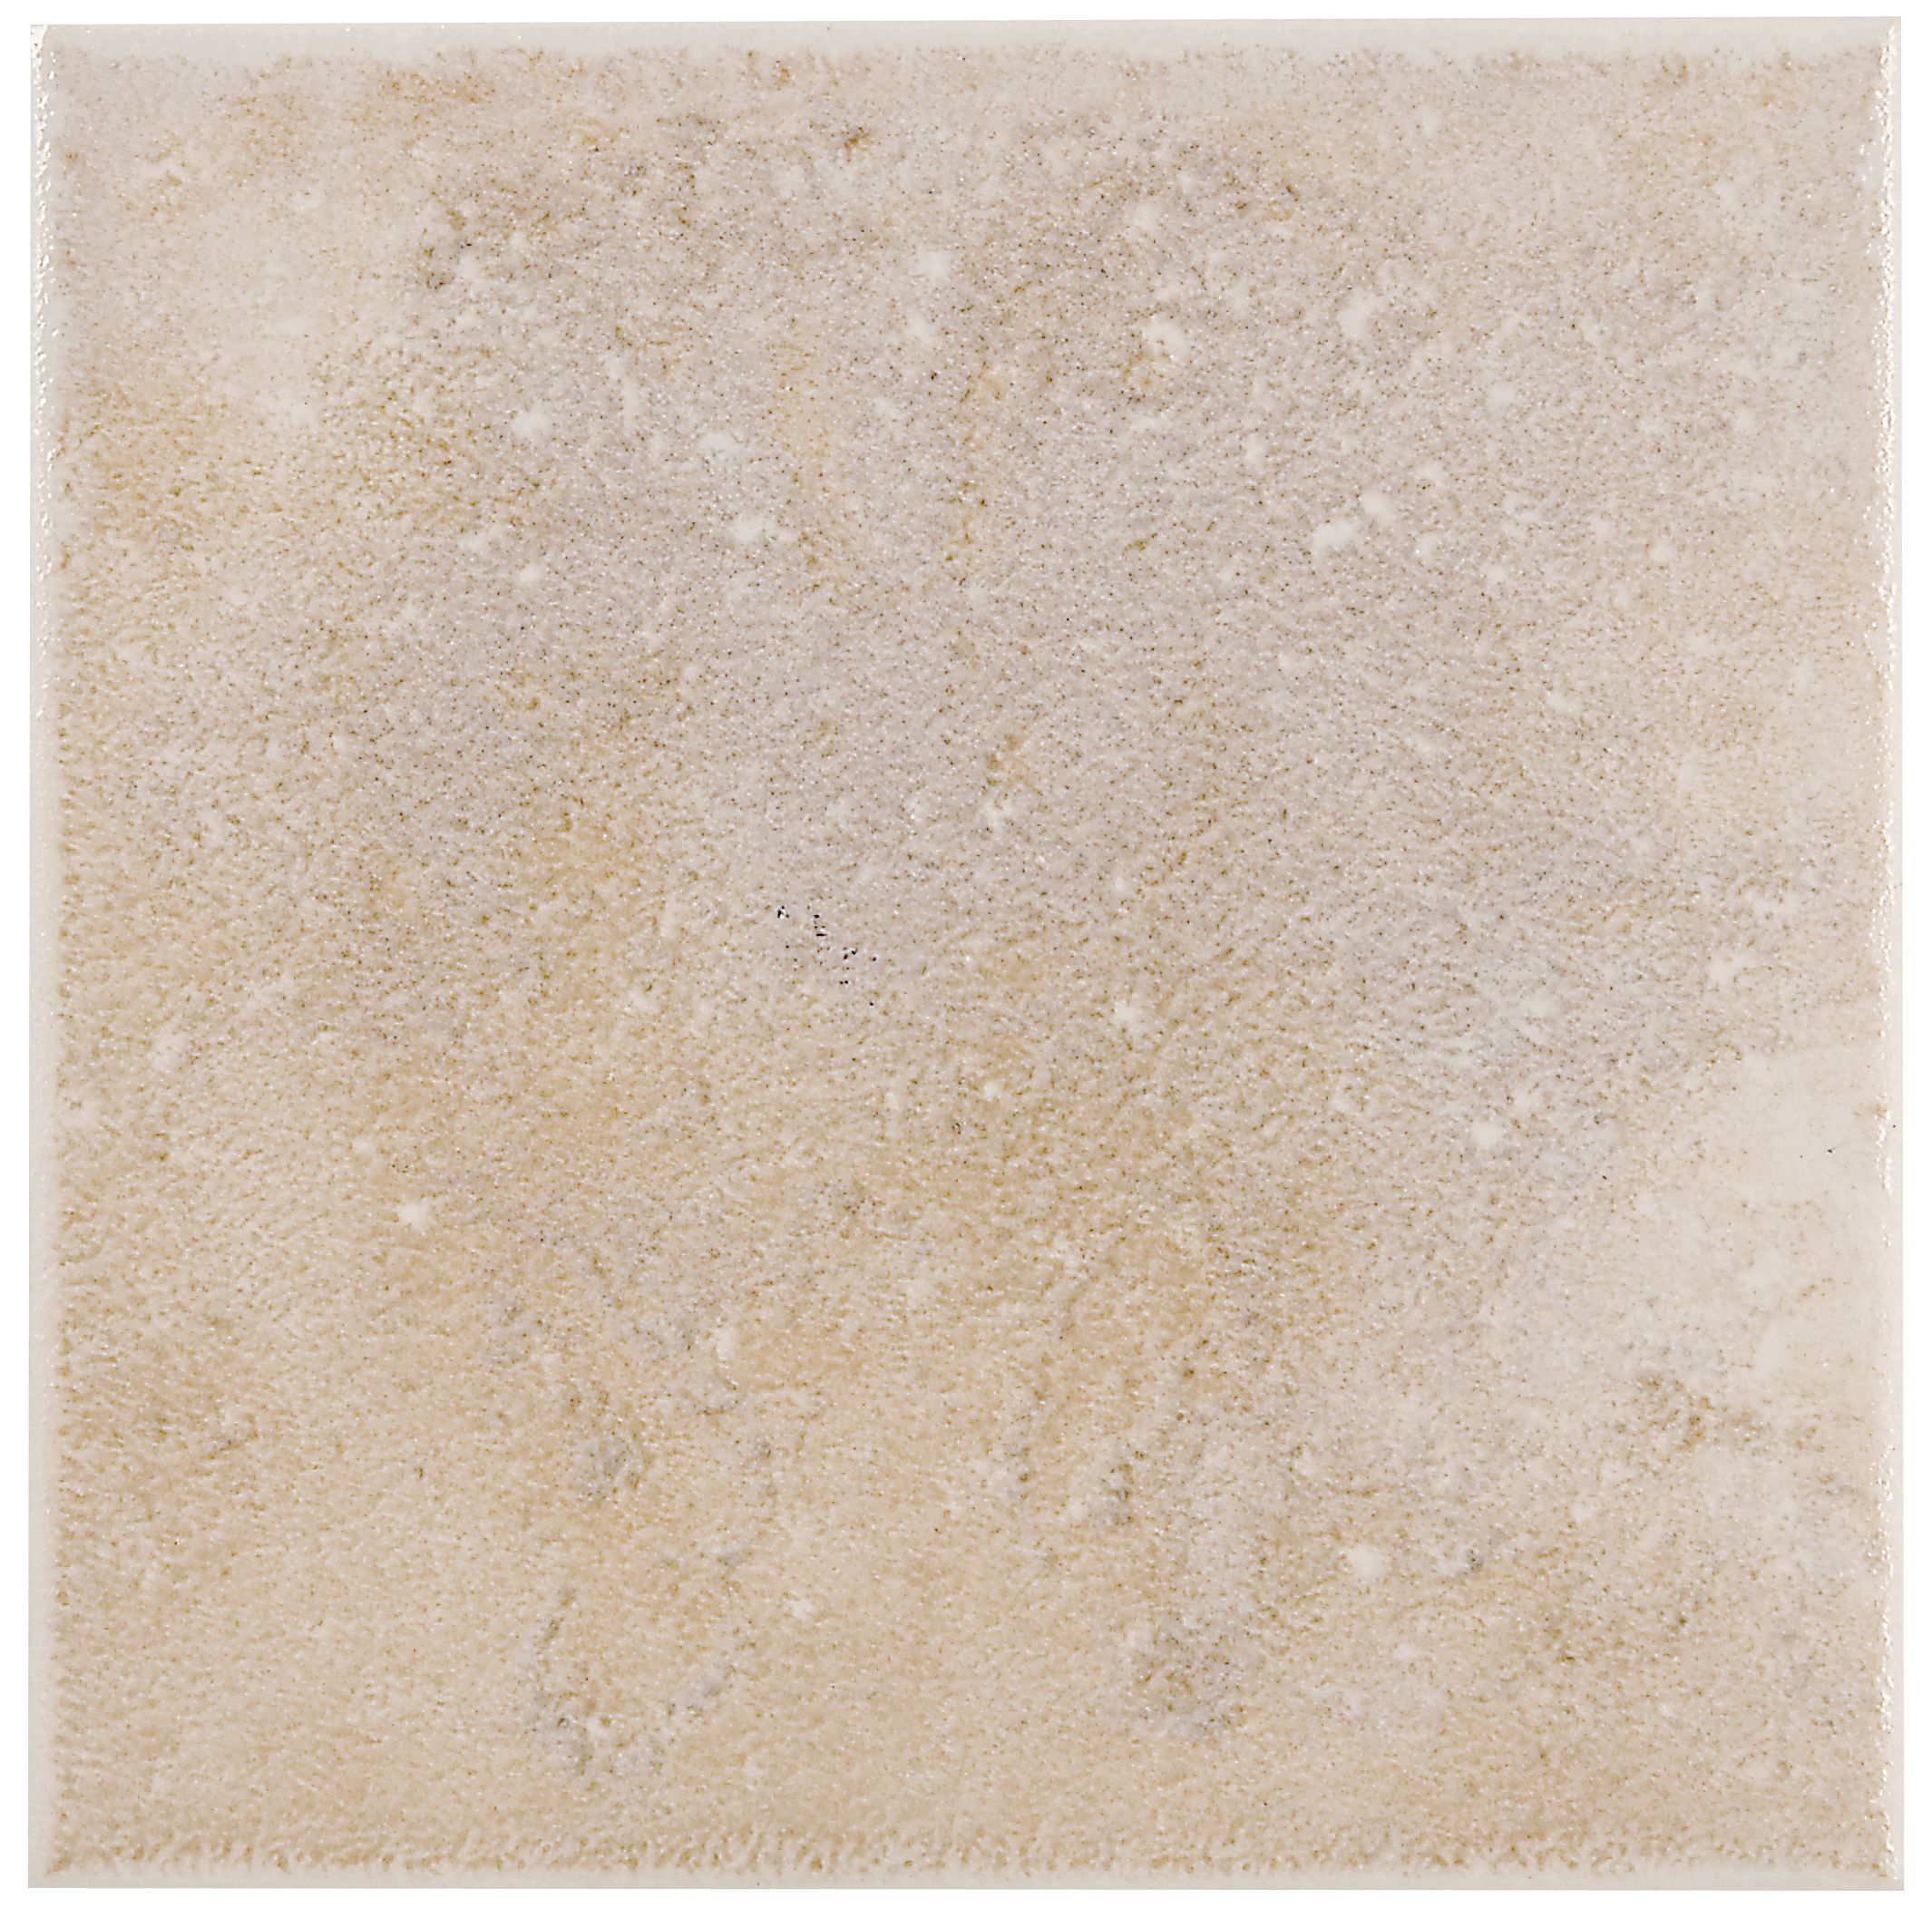 Metallic Cream Porcelain Wall Tile, Pack Of 100, (l)100mm (w)100mm